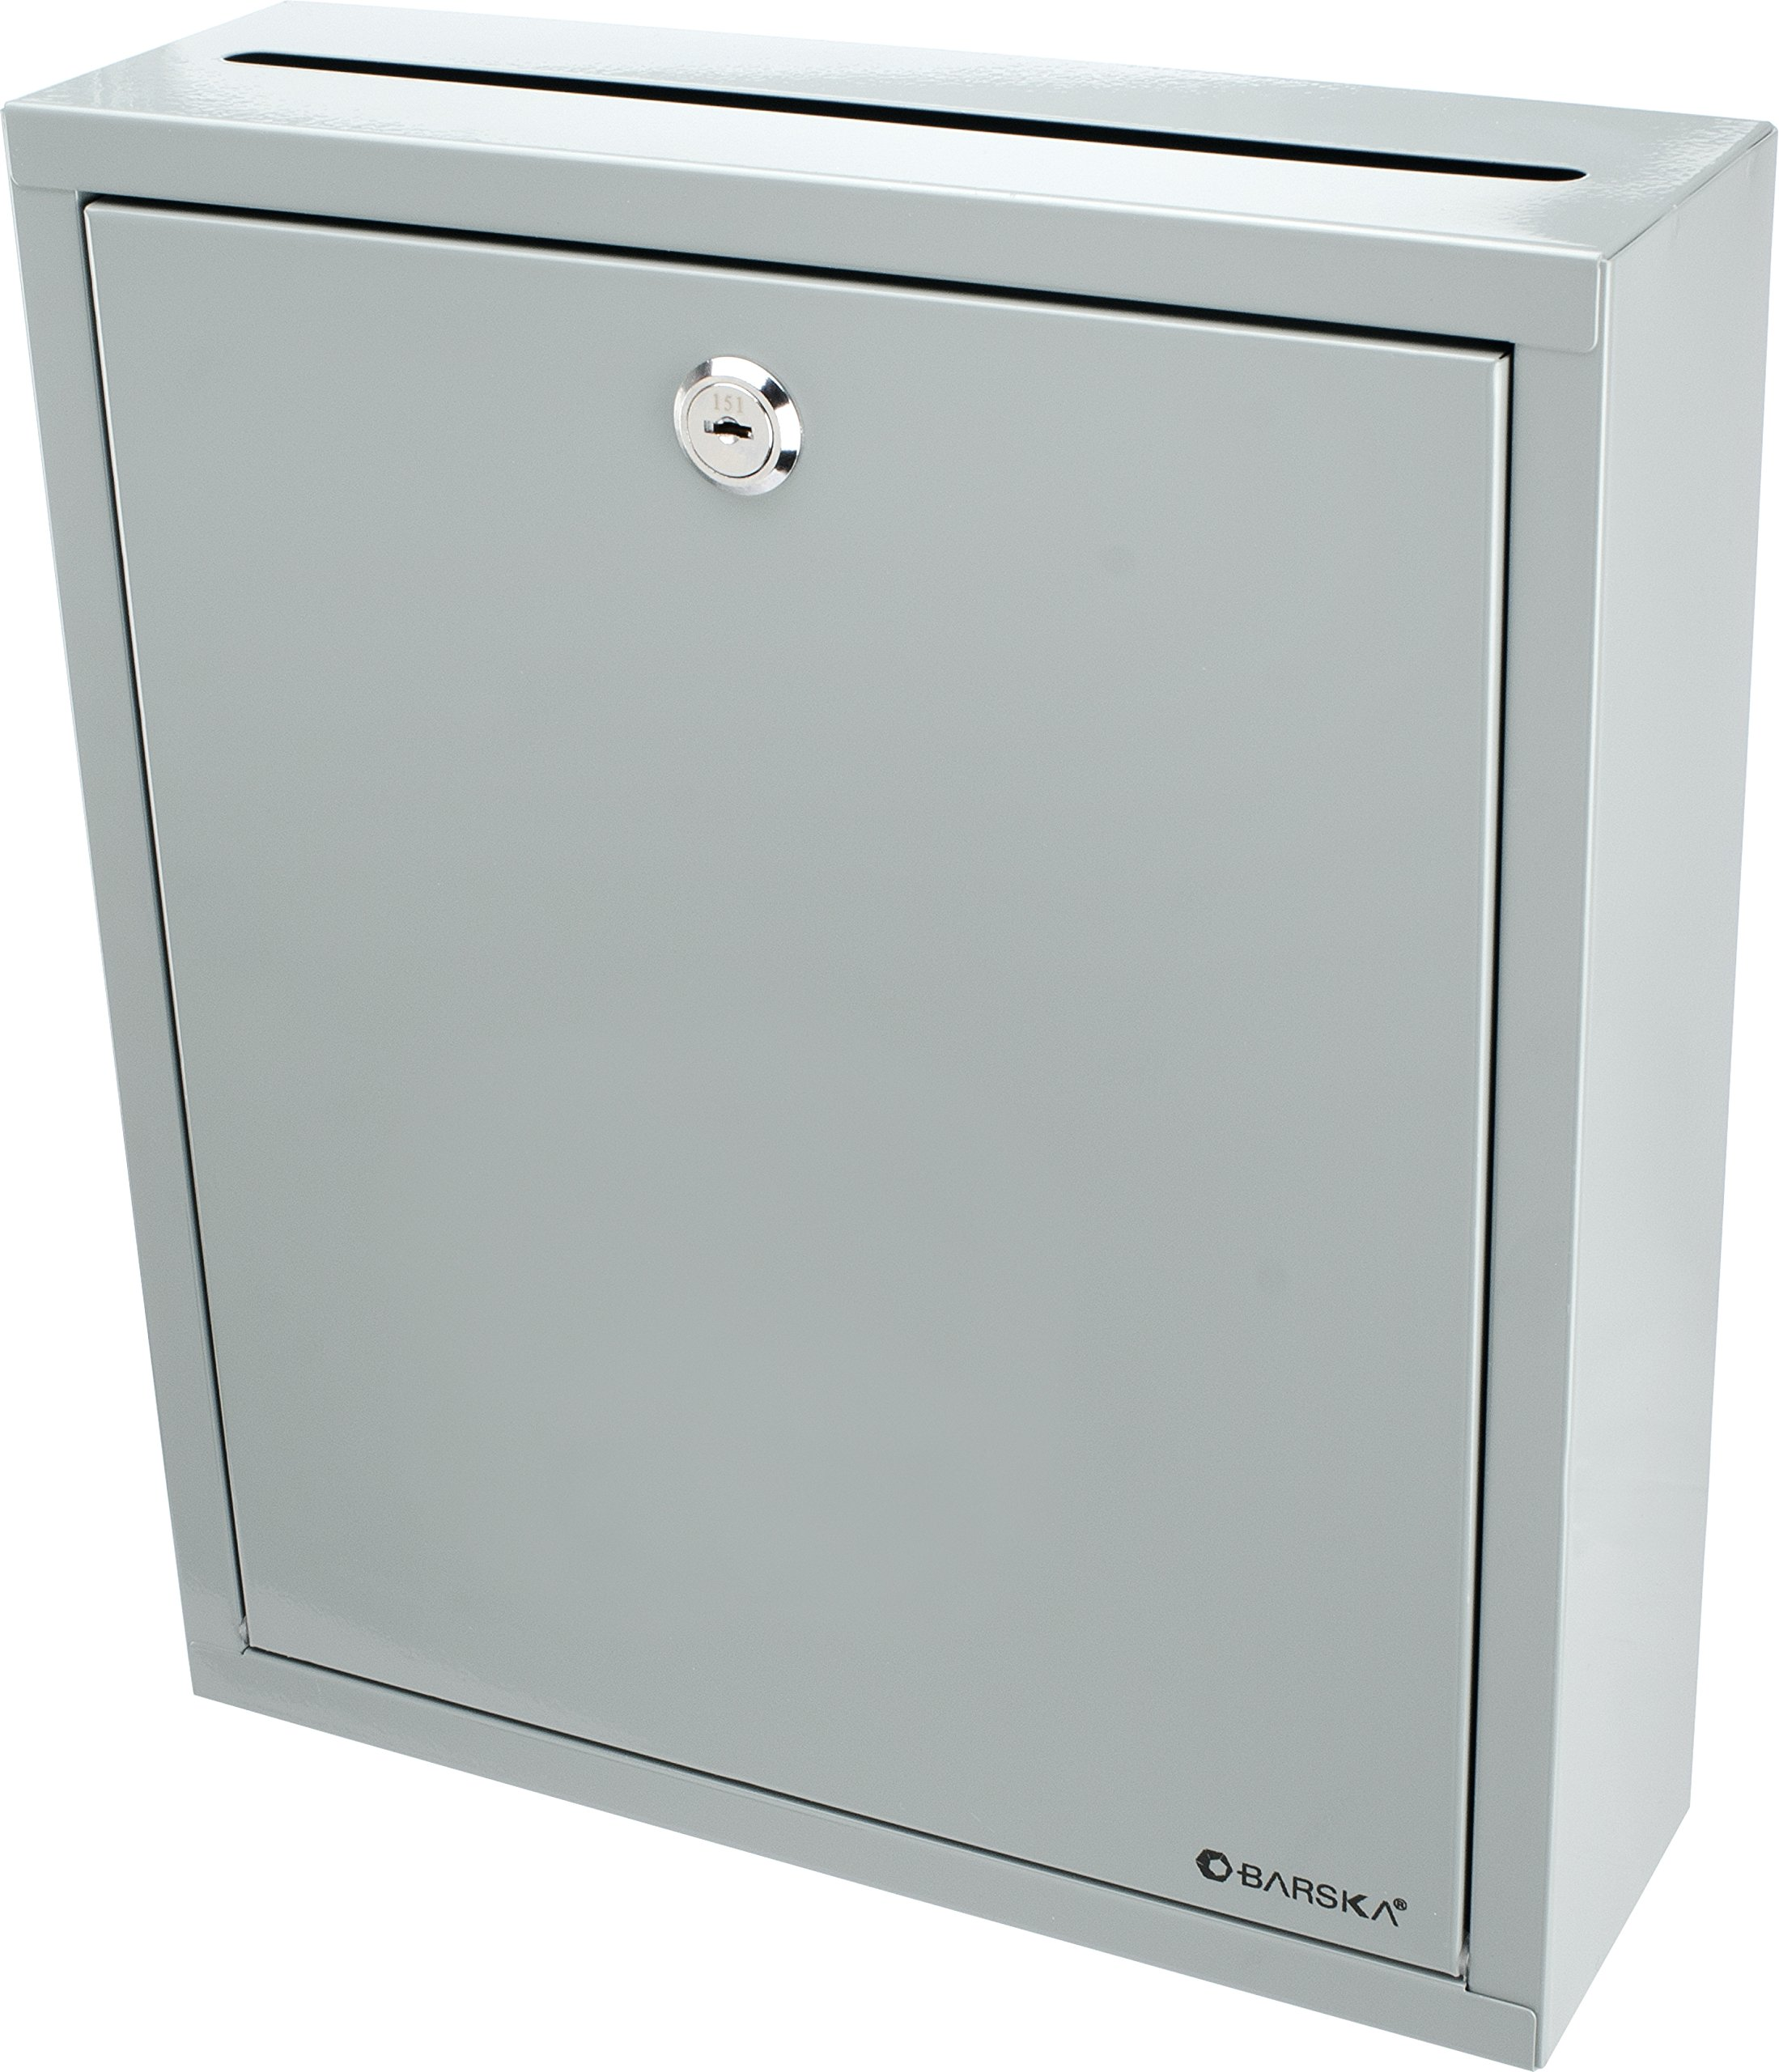 BARSKA Multi-Purpose Drop Box, Grey, Large by BARSKA